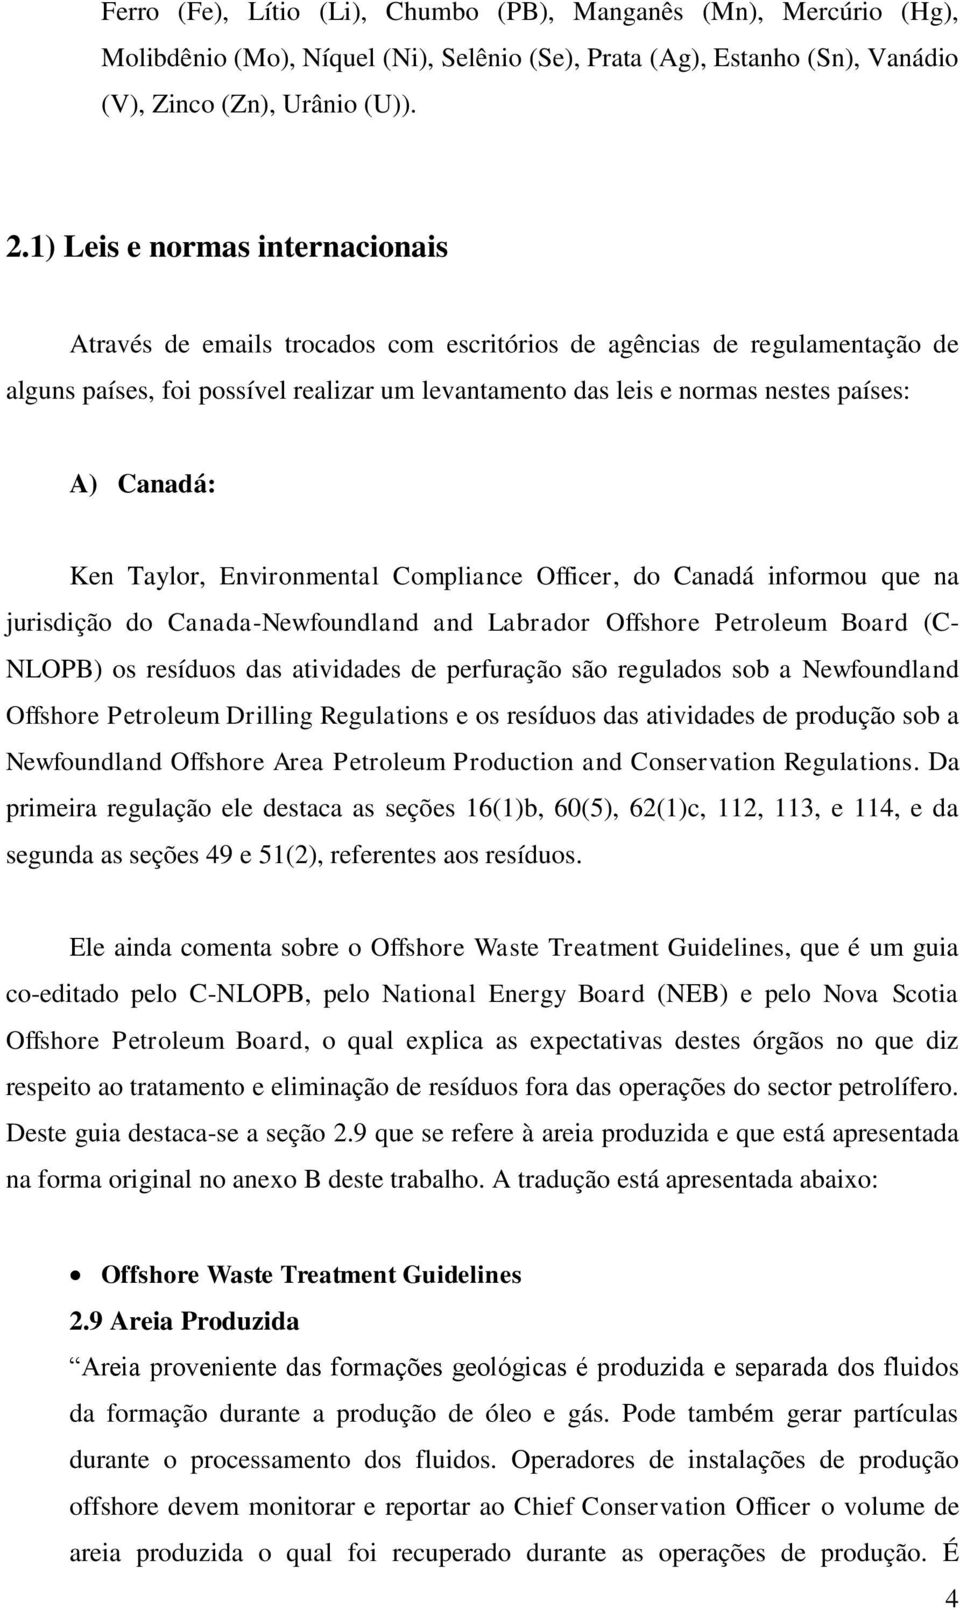 Canadá: Ken Taylor, Environmental Compliance Officer, do Canadá informou que na jurisdição do Canada-Newfoundland and Labrador Offshore Petroleum Board (C- NLOPB) os resíduos das atividades de